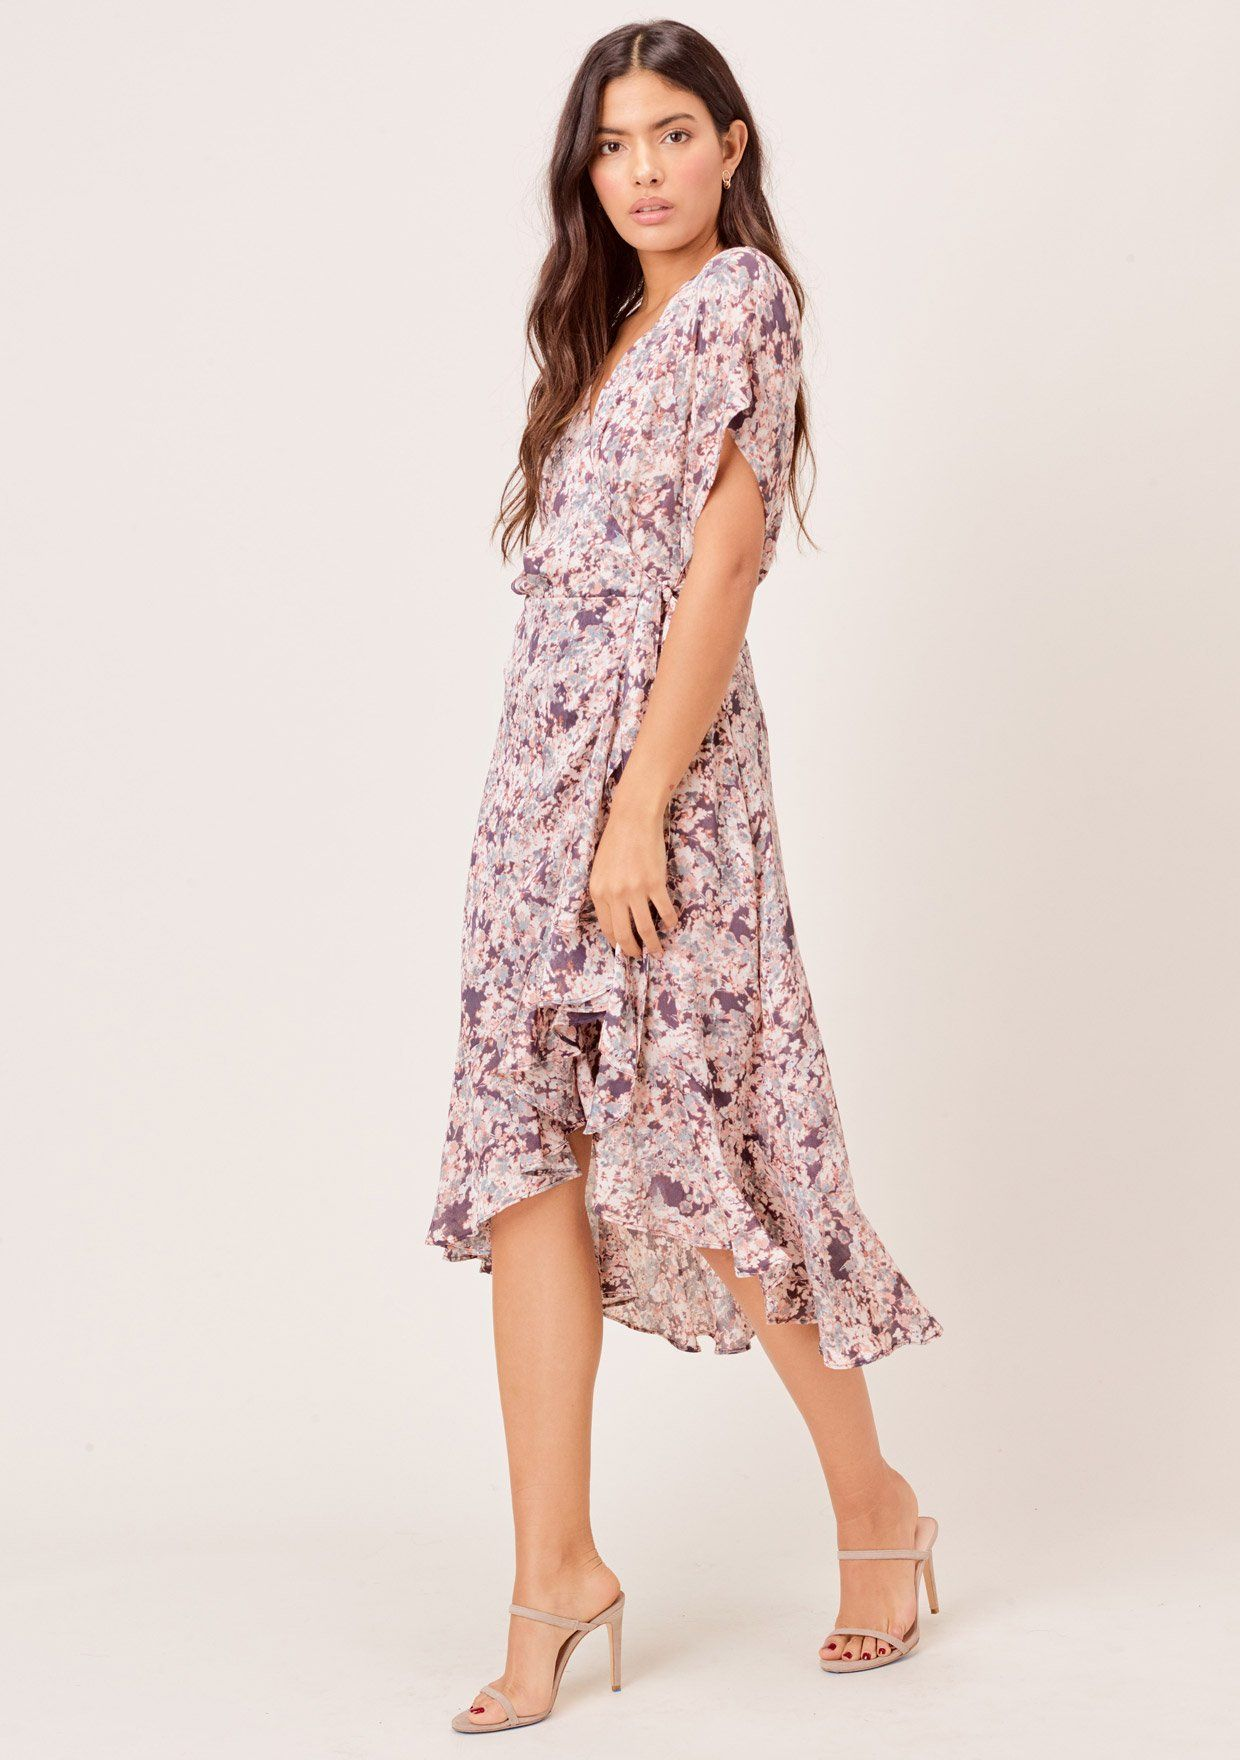 [Color: Charcoal/Fog] Lovestitch charcoal/fog Floral printed, rolled short sleeve wrap dress with ruffled skirt.